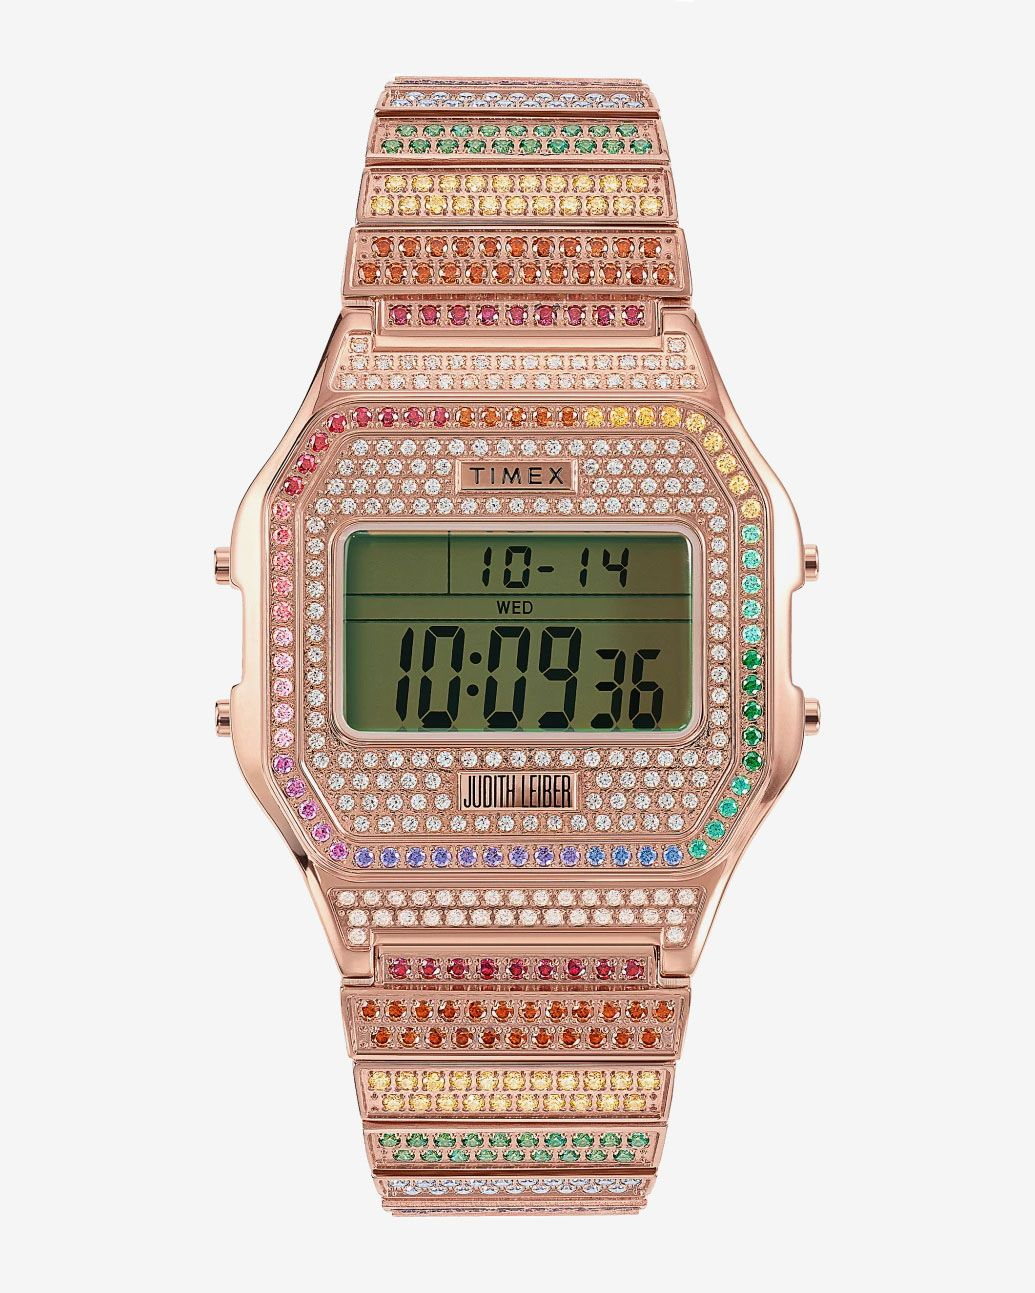 Timex's Most Expensive Watch Is, Fittingly, a Judith Leiber Co-Sign